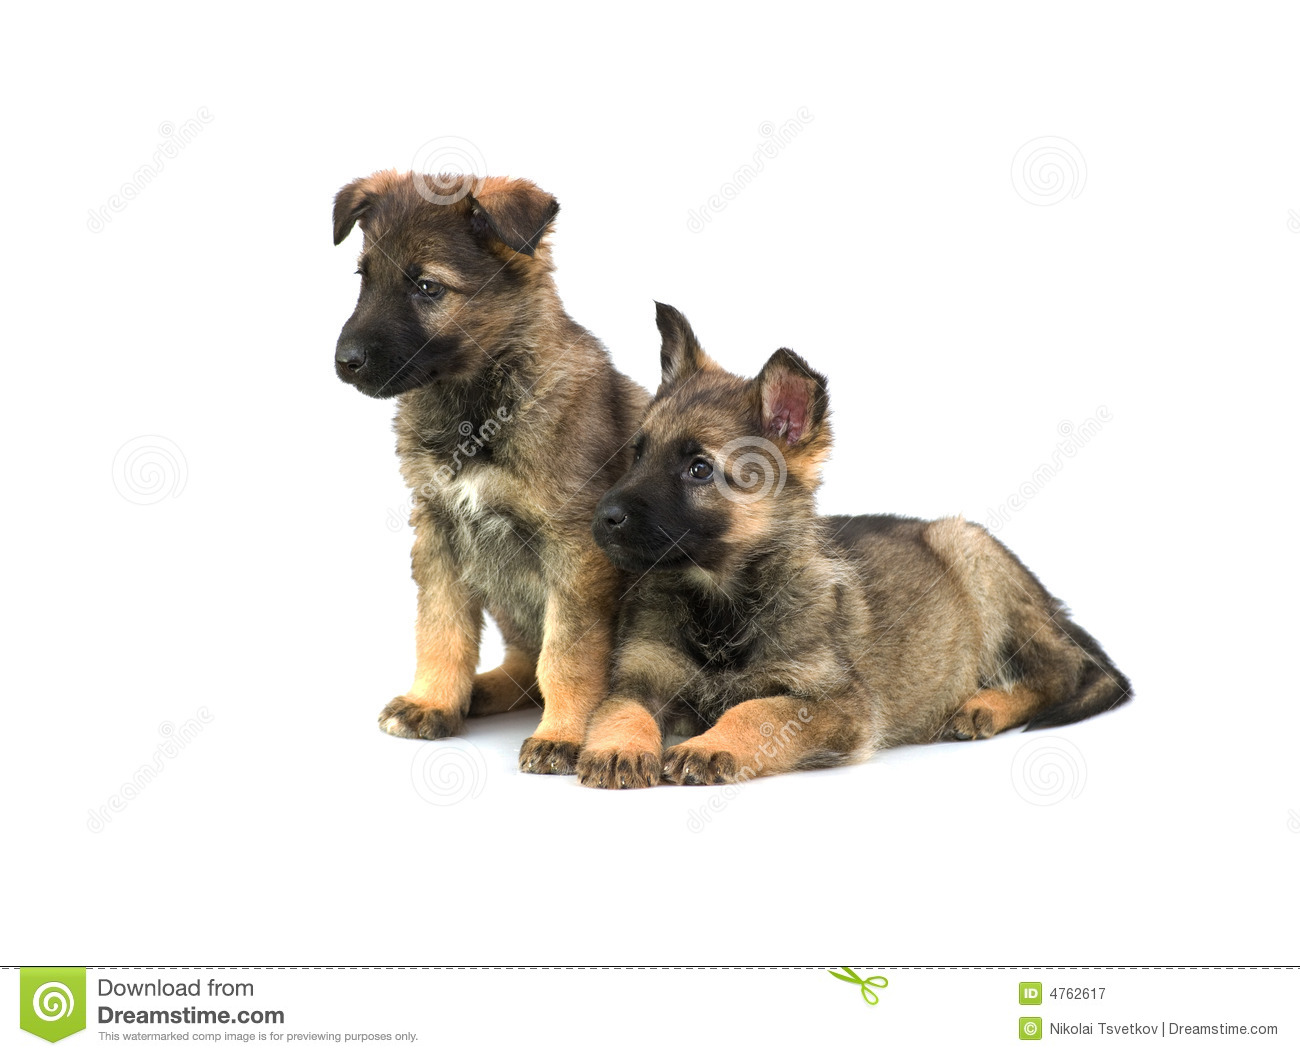 Two Germany sheep-dog puppies